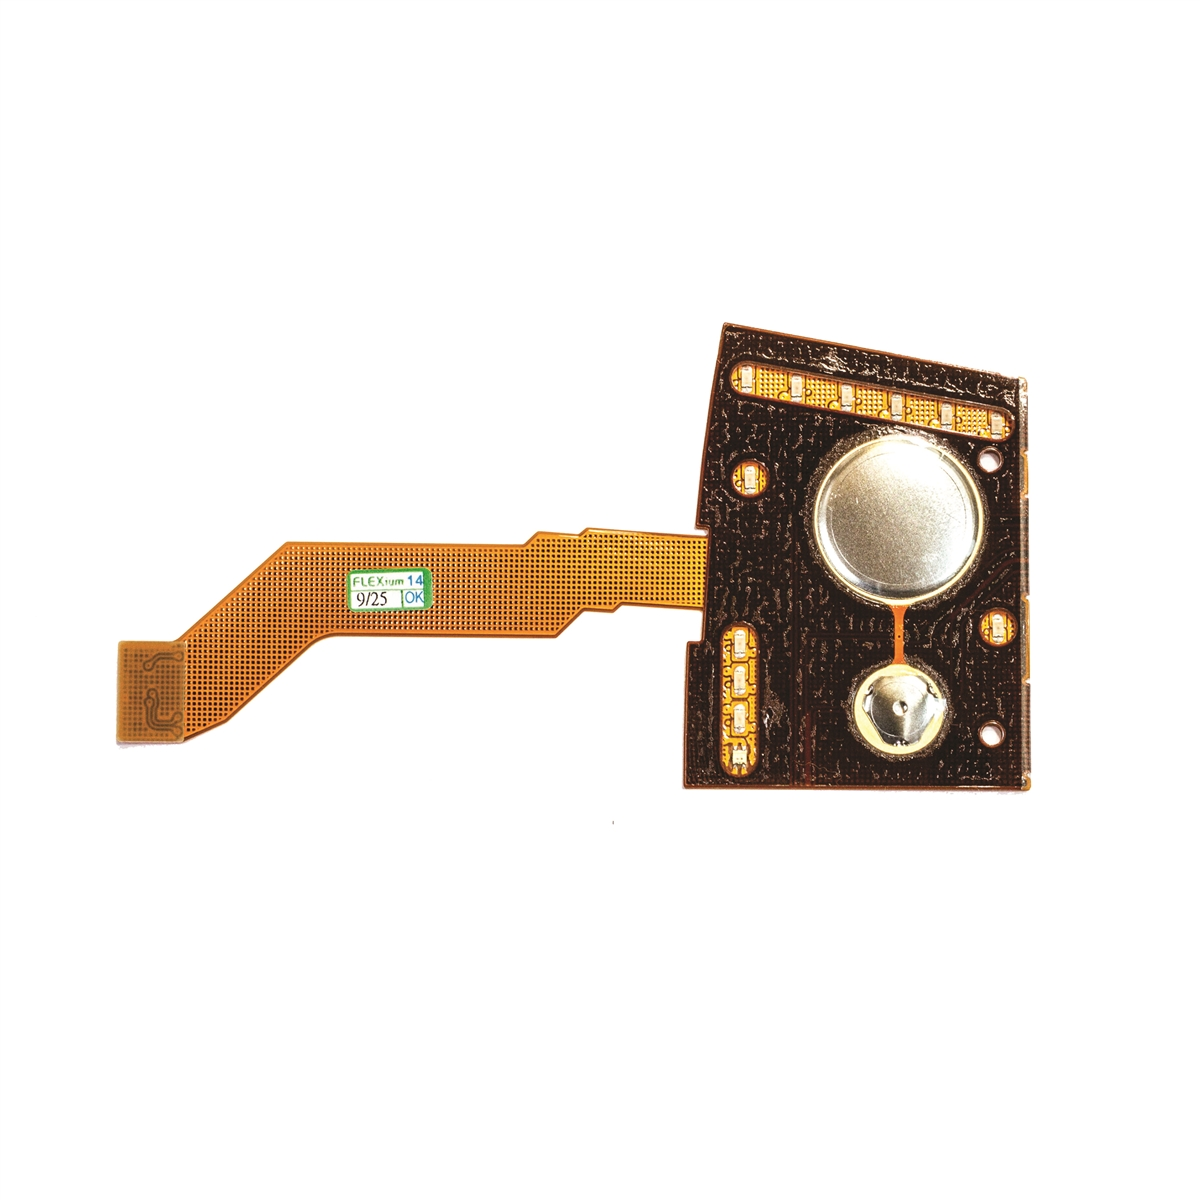 Philips IntelliVue M2601B M4841A TRx+ Telemetry Transmitter S01 S02 S03 LED Membrane Switch Circuit Board Flex Cable